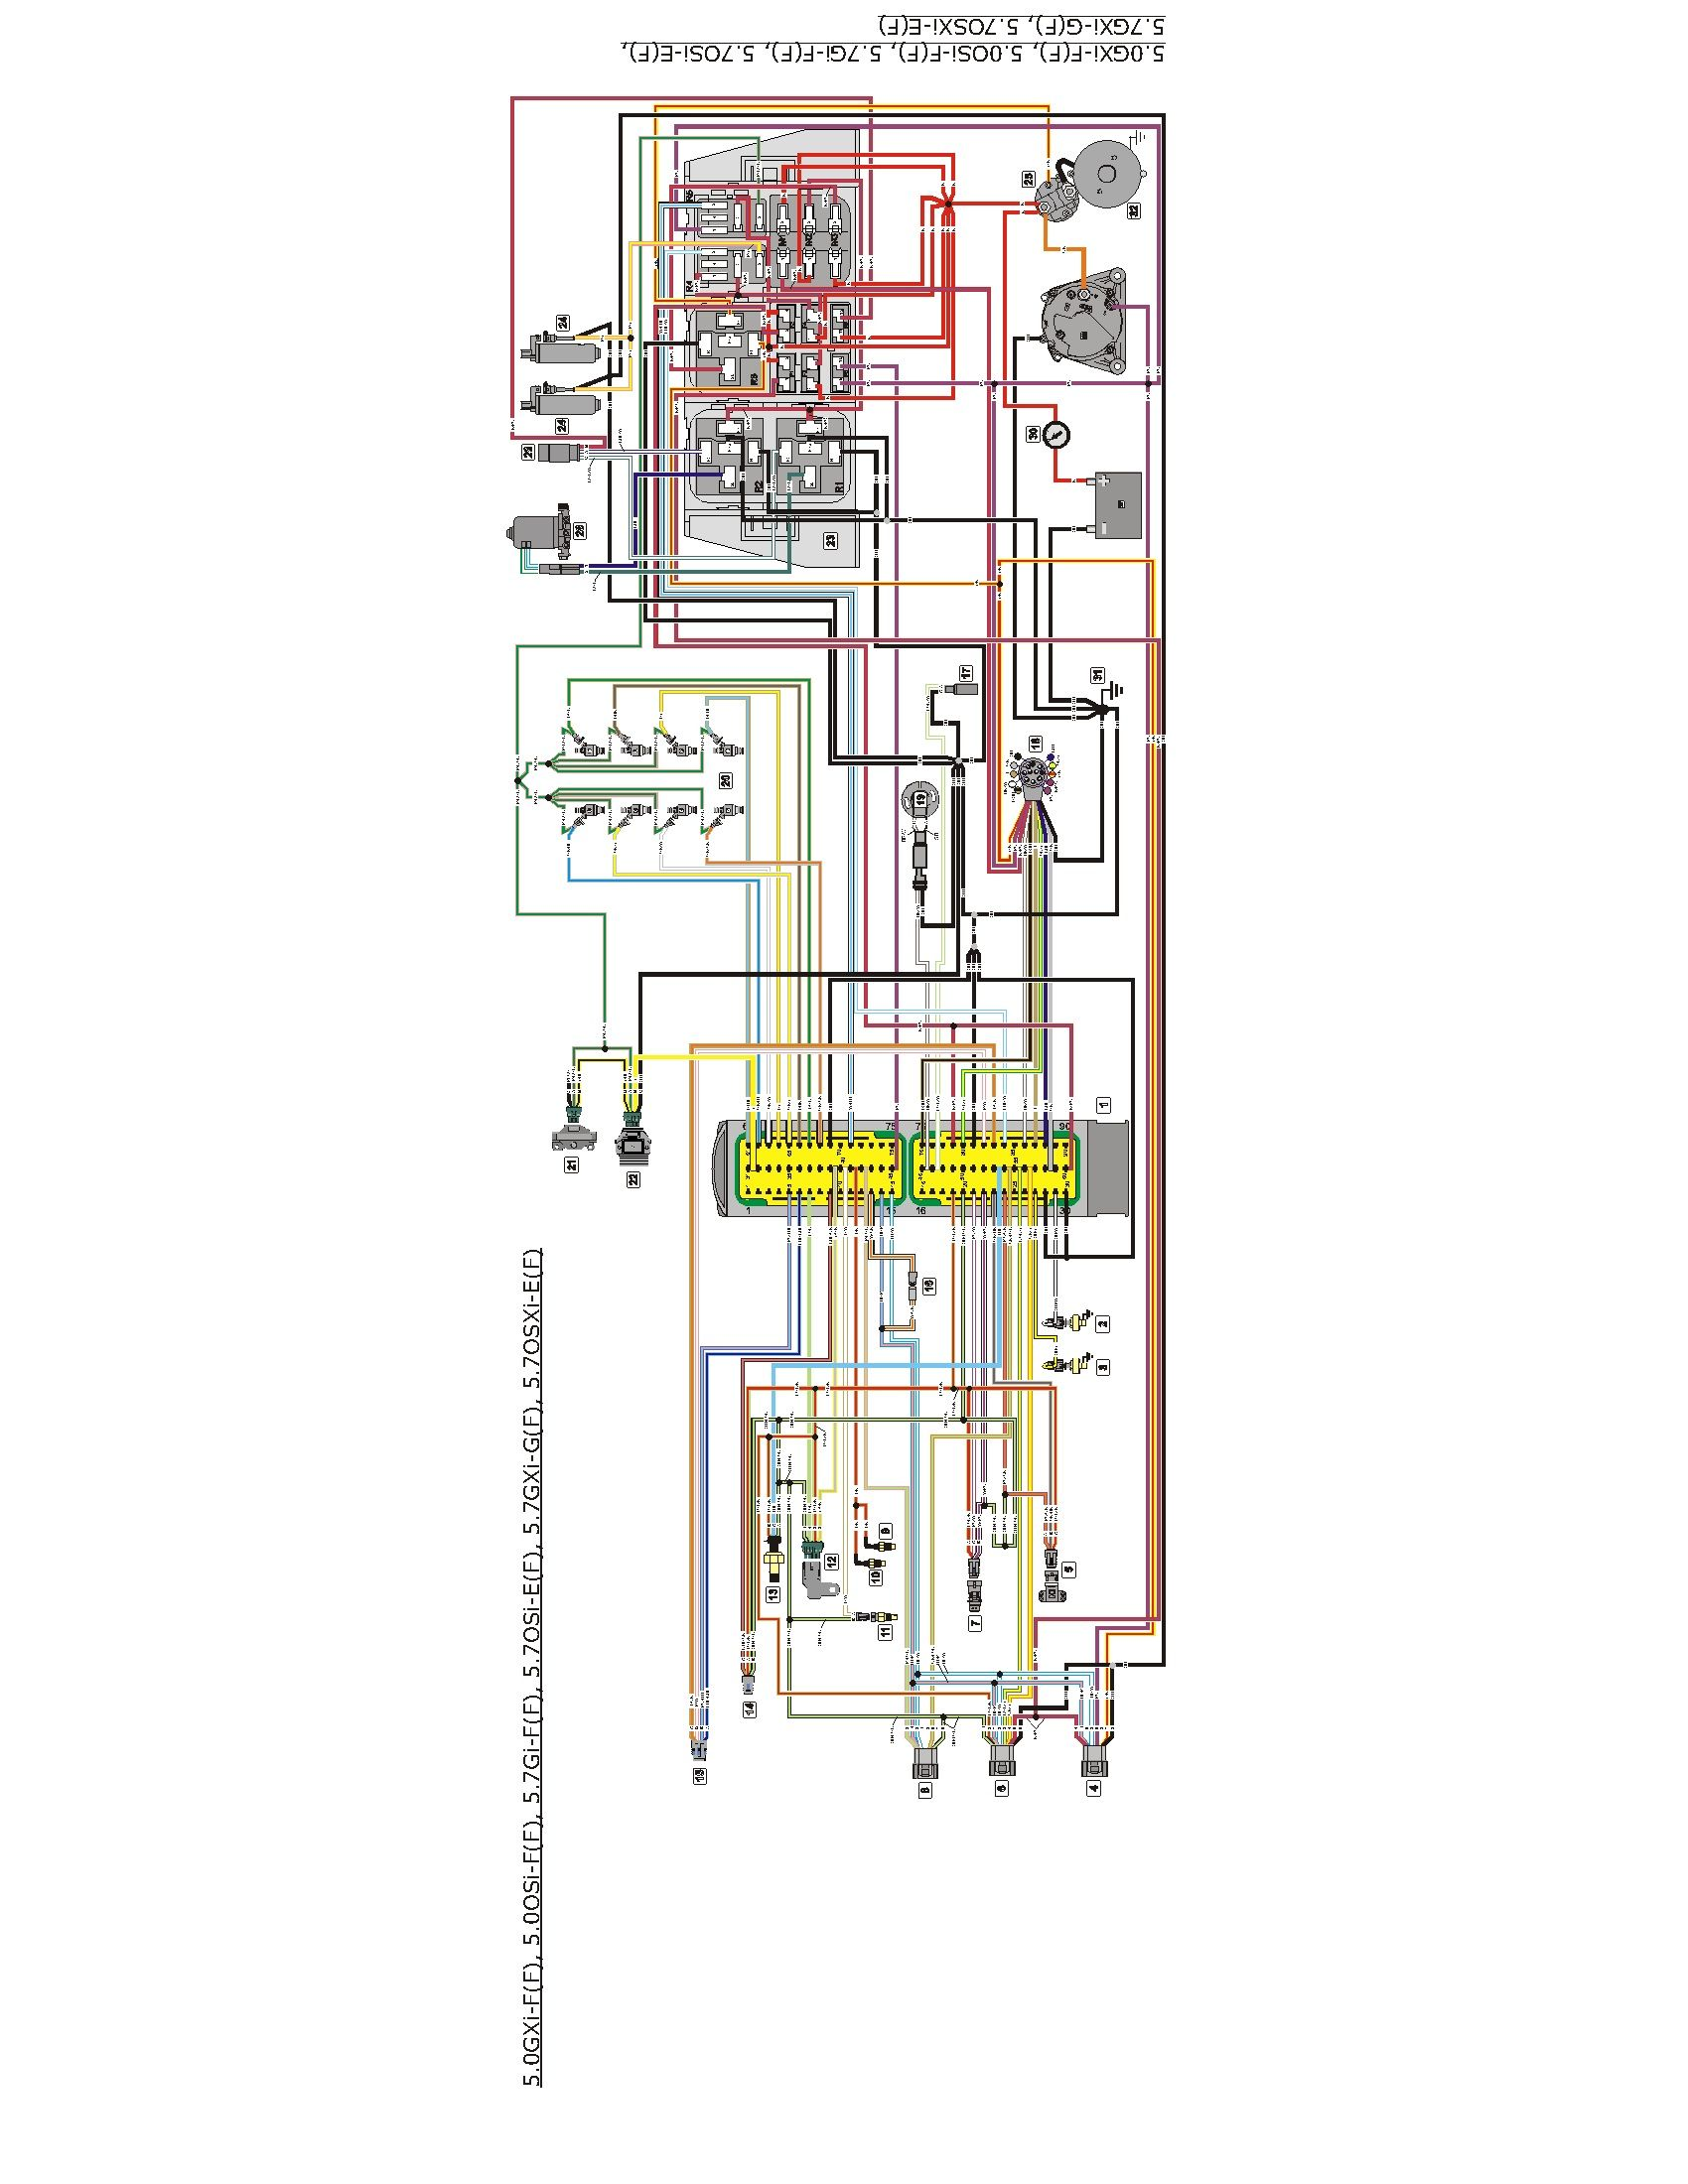 Volvo Penta 5 7 Engine Wiring Diagram Boat Volvo Diagram Boat